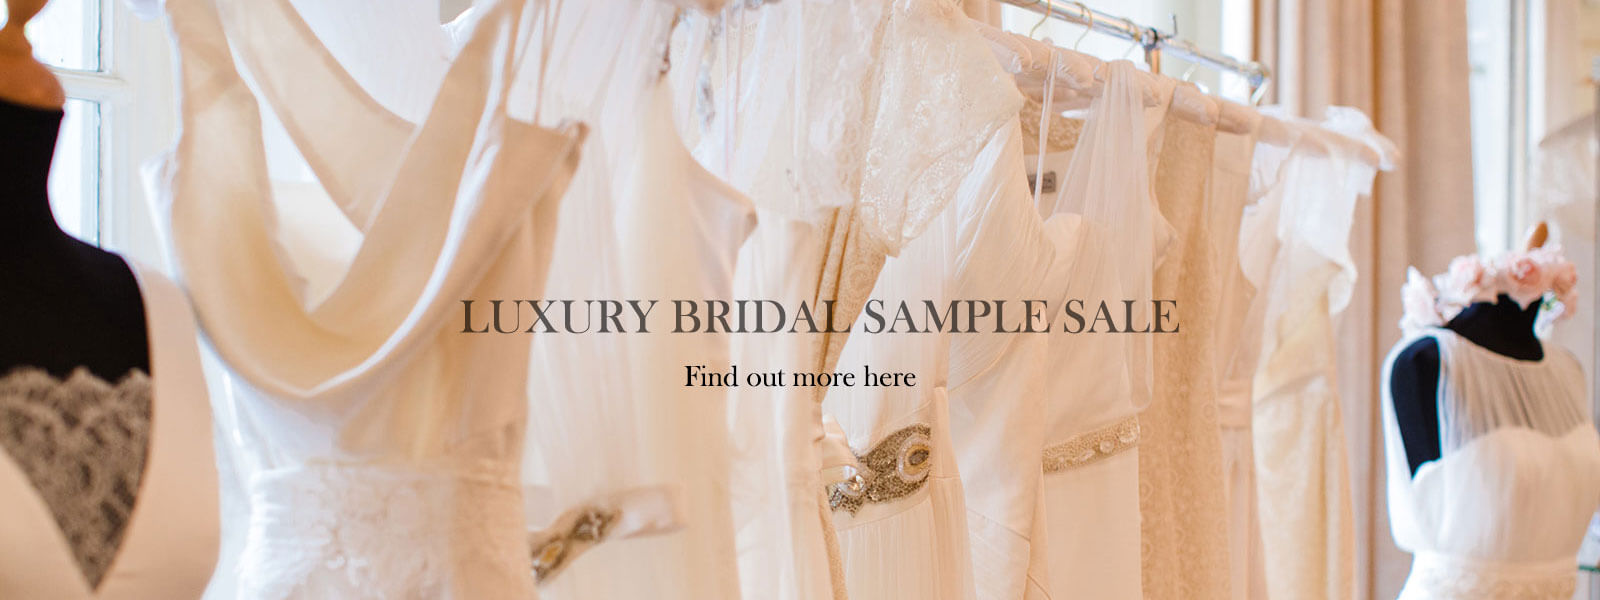 Sanyukta Shrestha extends Wedding Dress Sample Sale for Valentines Day!